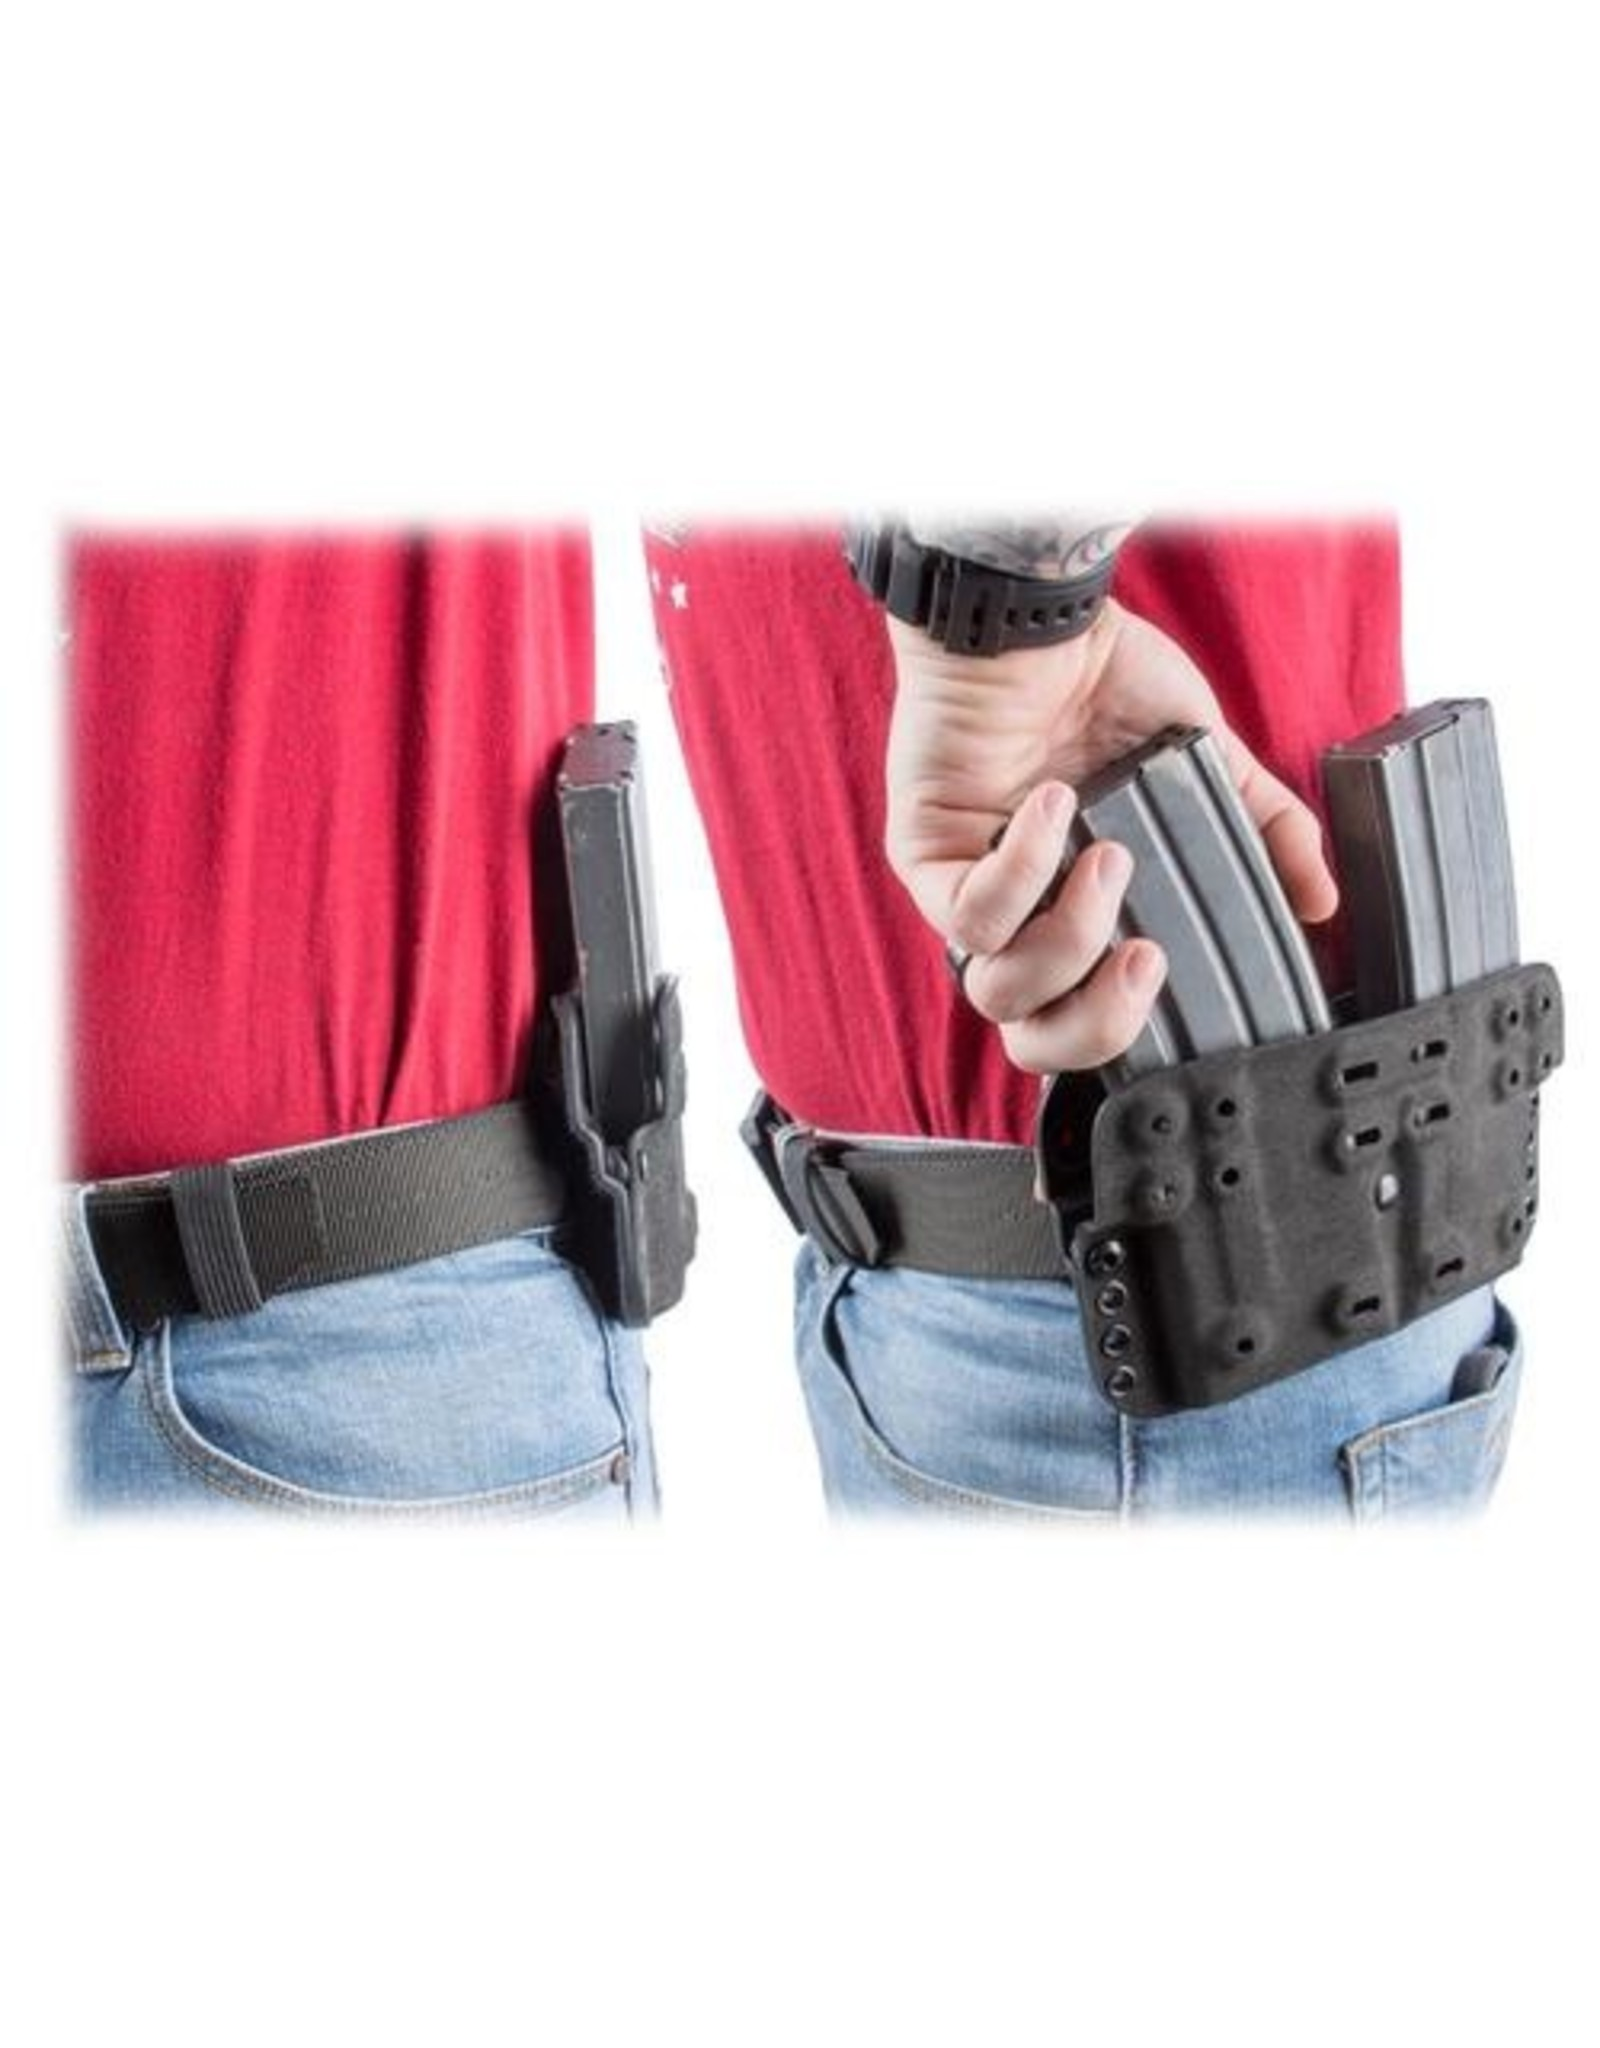 G-CODE G-CODE - HALEY STRATEGIC (HSP) D3 501 DOUBLE MAG CARRIER